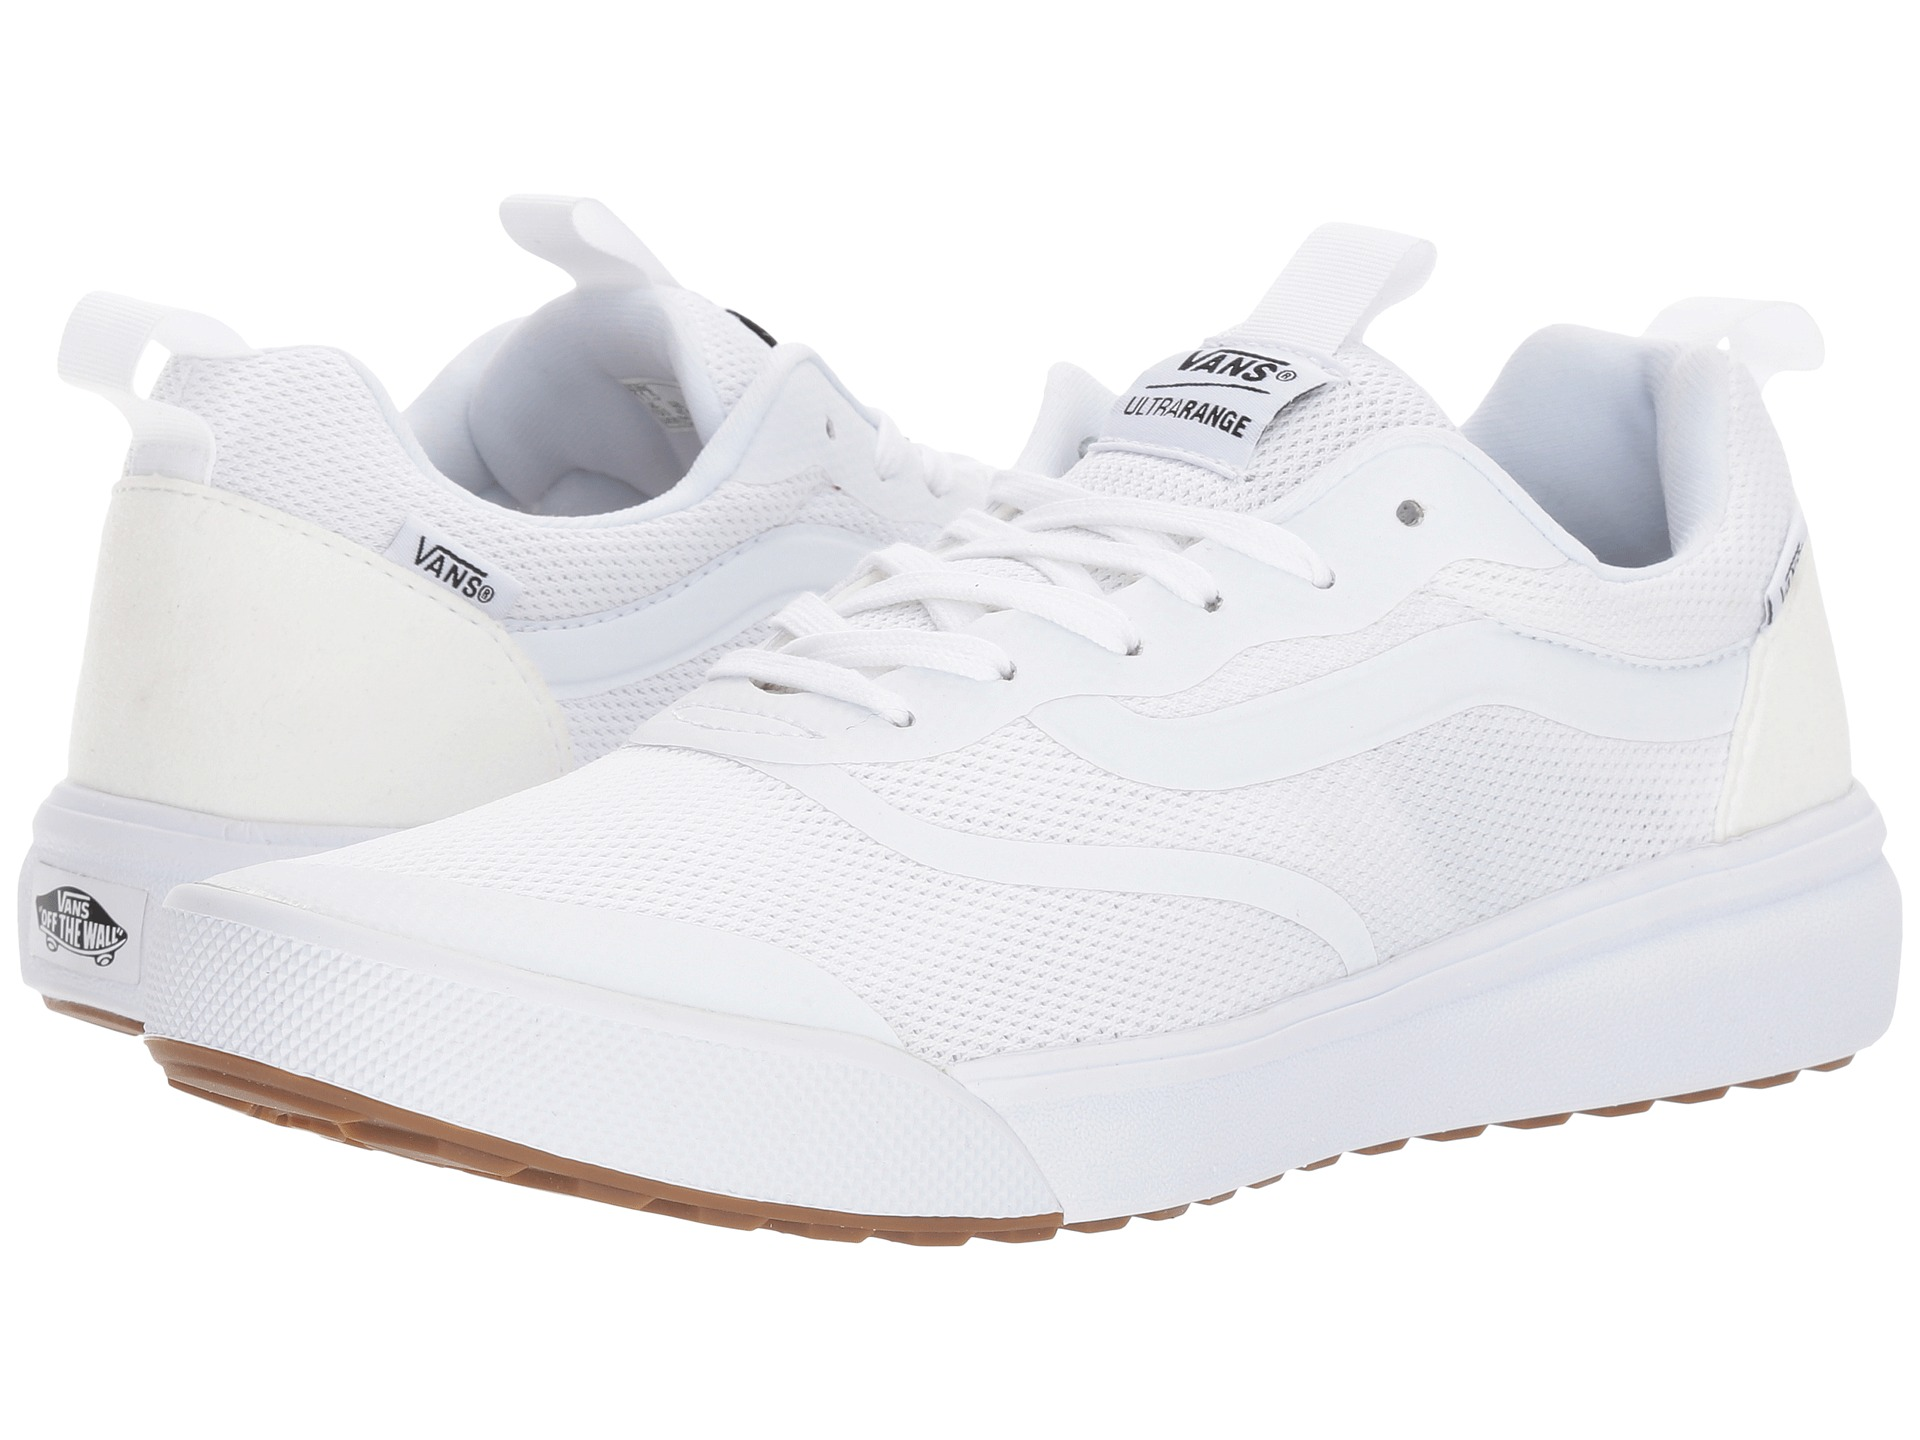 8cd178fbde77 Just bought a pair of these to maybe try on the course. The bottoms Look  like a very similar to the nike lunar wing tips. Tired them on in the store  super ...